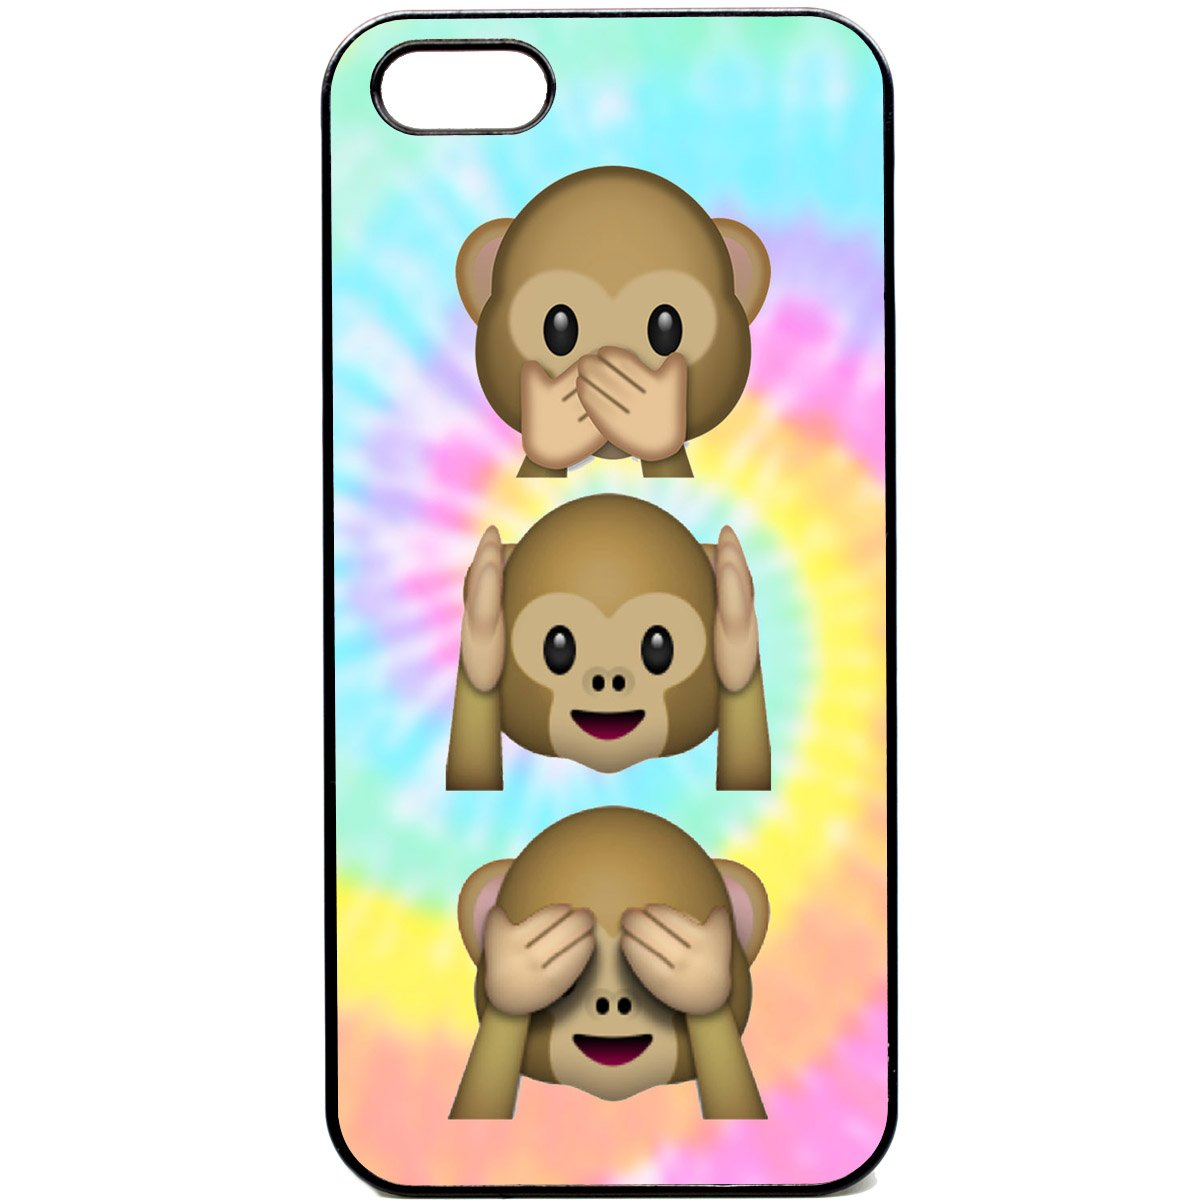 Gut bekannt iPhone 5 / 5s Phone case Emoji monkey Tie Dye cute Emojis 9gag  ZI06